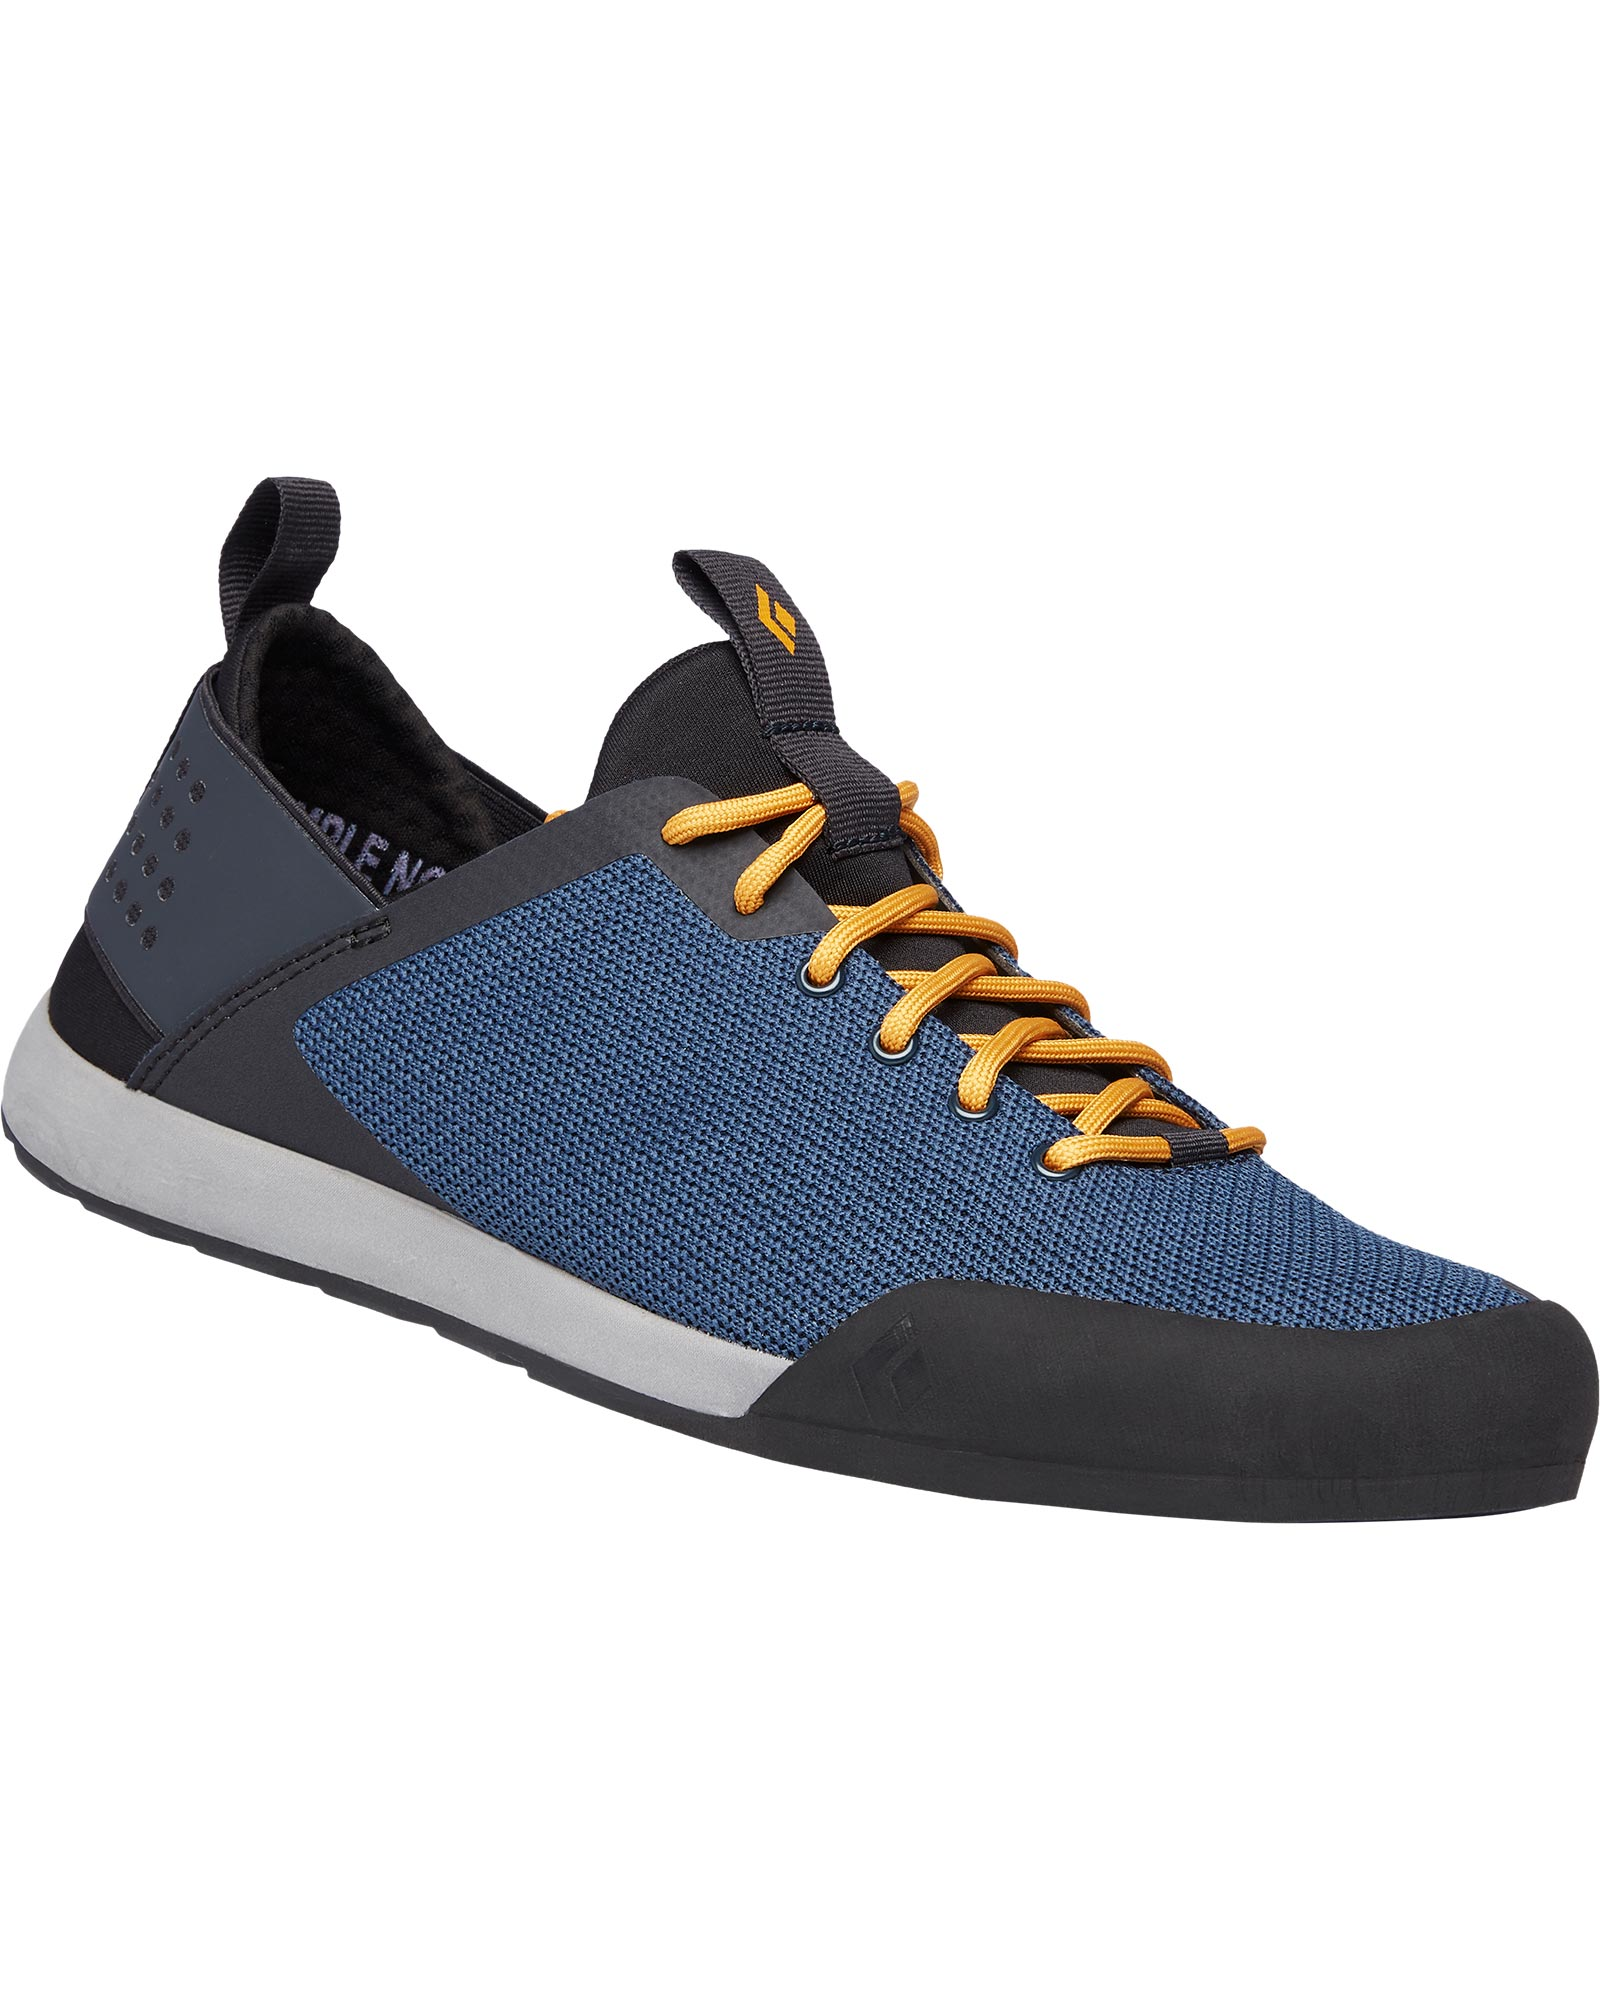 Black Diamond Men's Session Approach Shoes 0